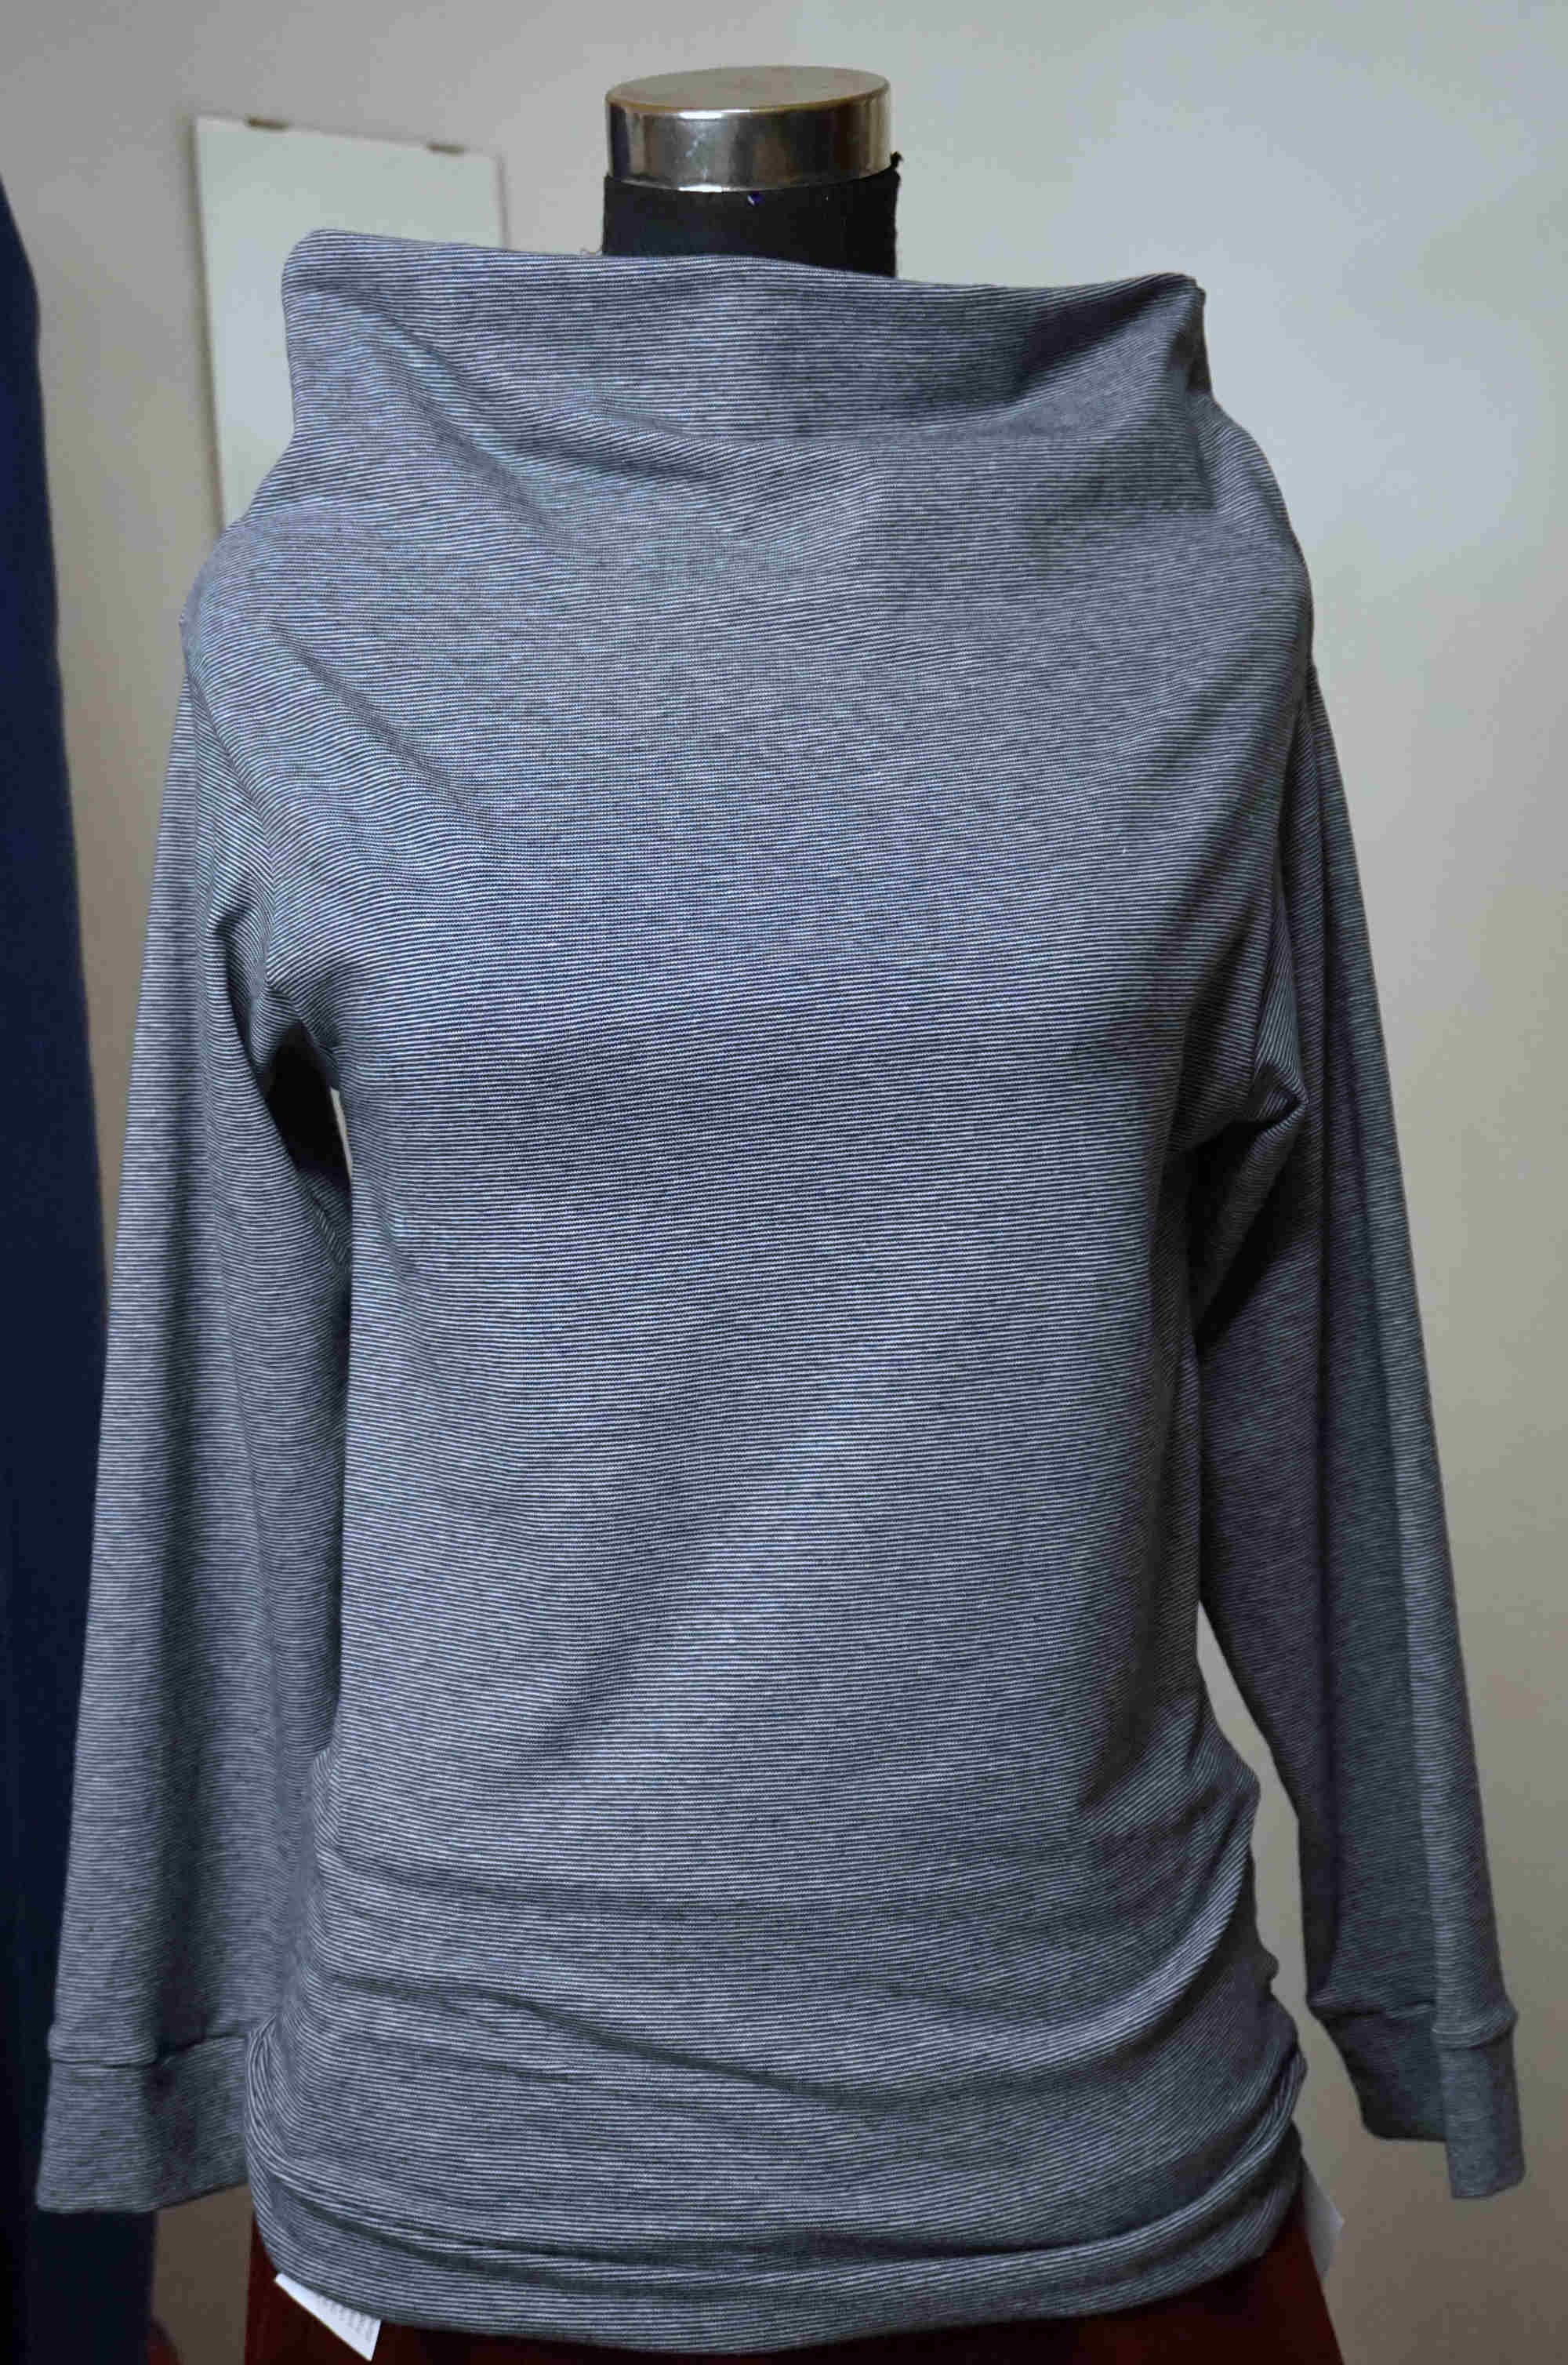 Boatneck sweater with long sleeves